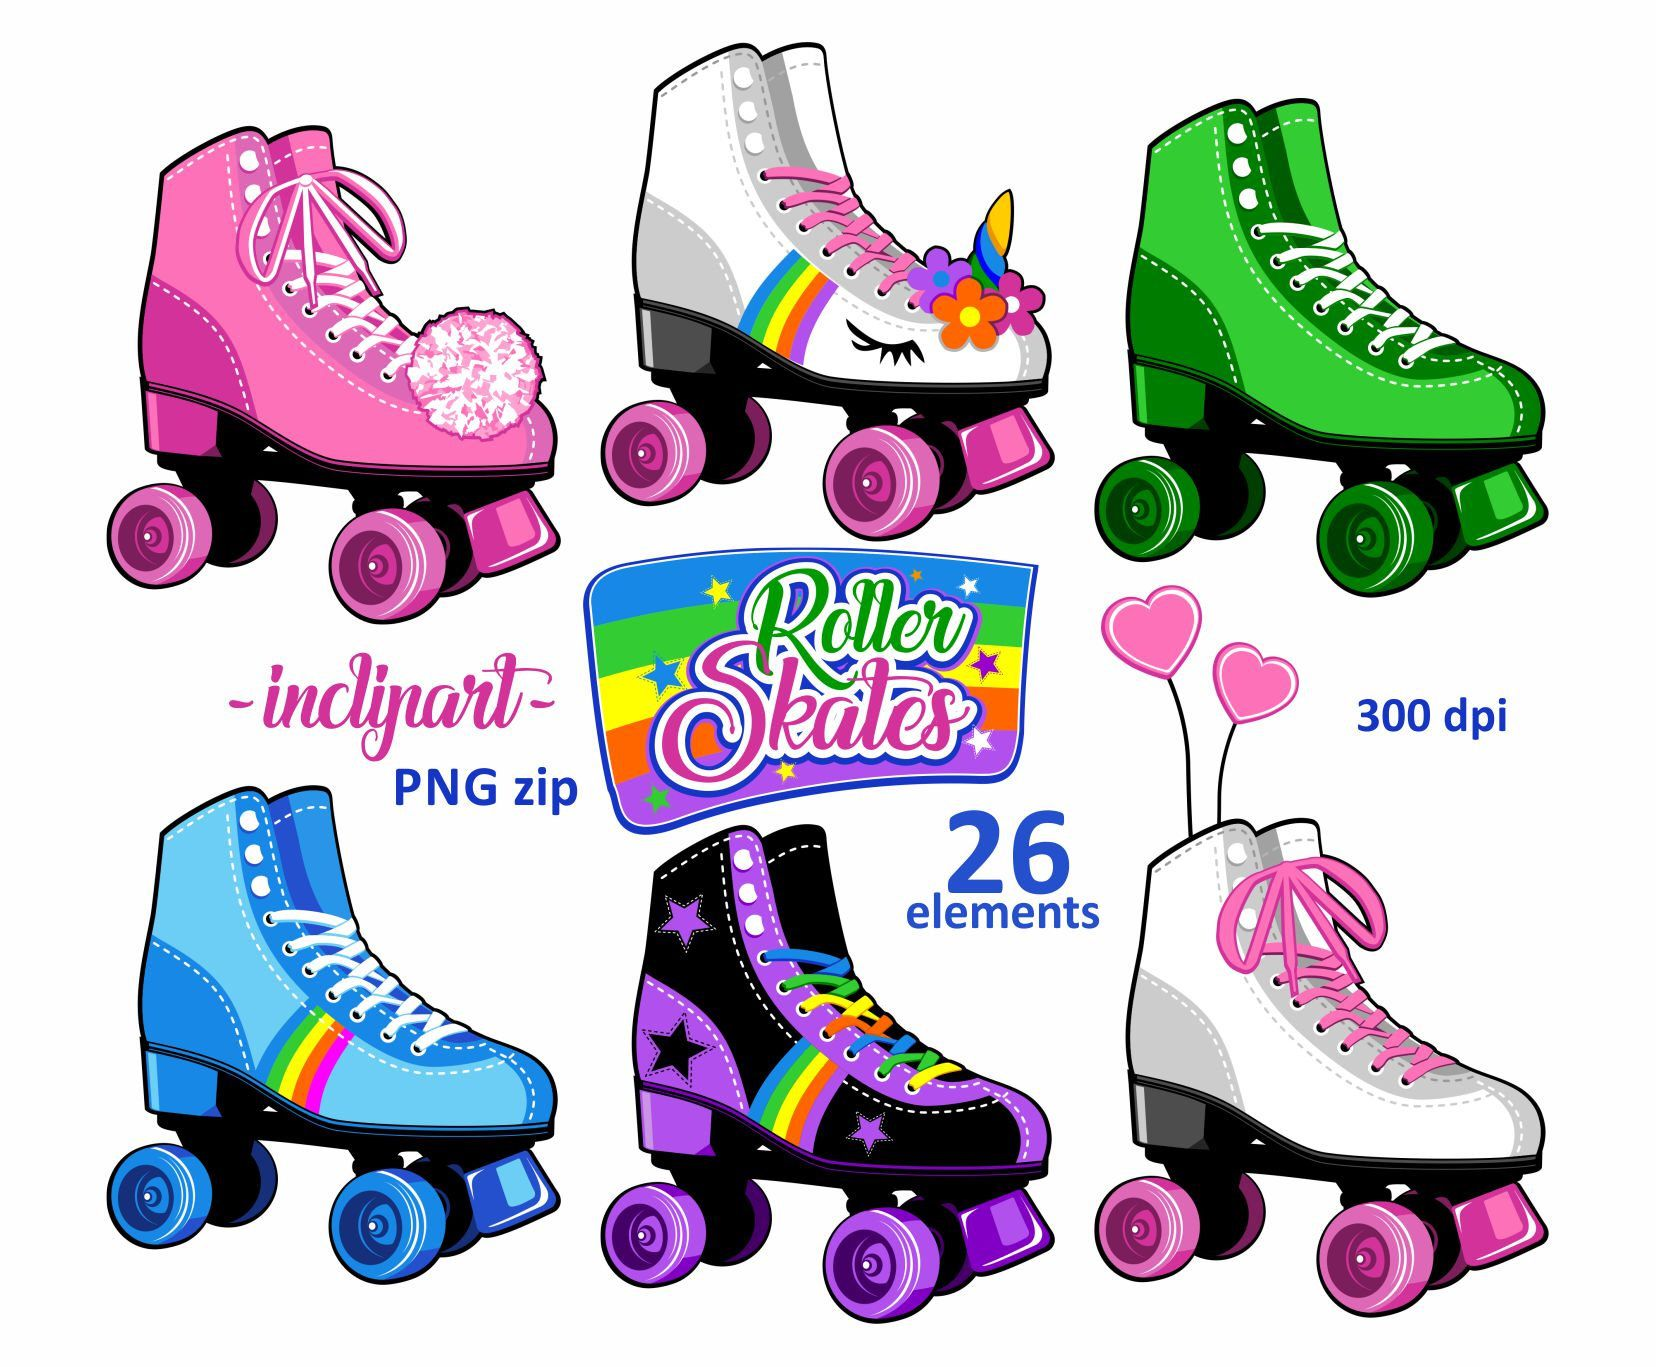 Skates party colorful skate. Bakery clipart roller